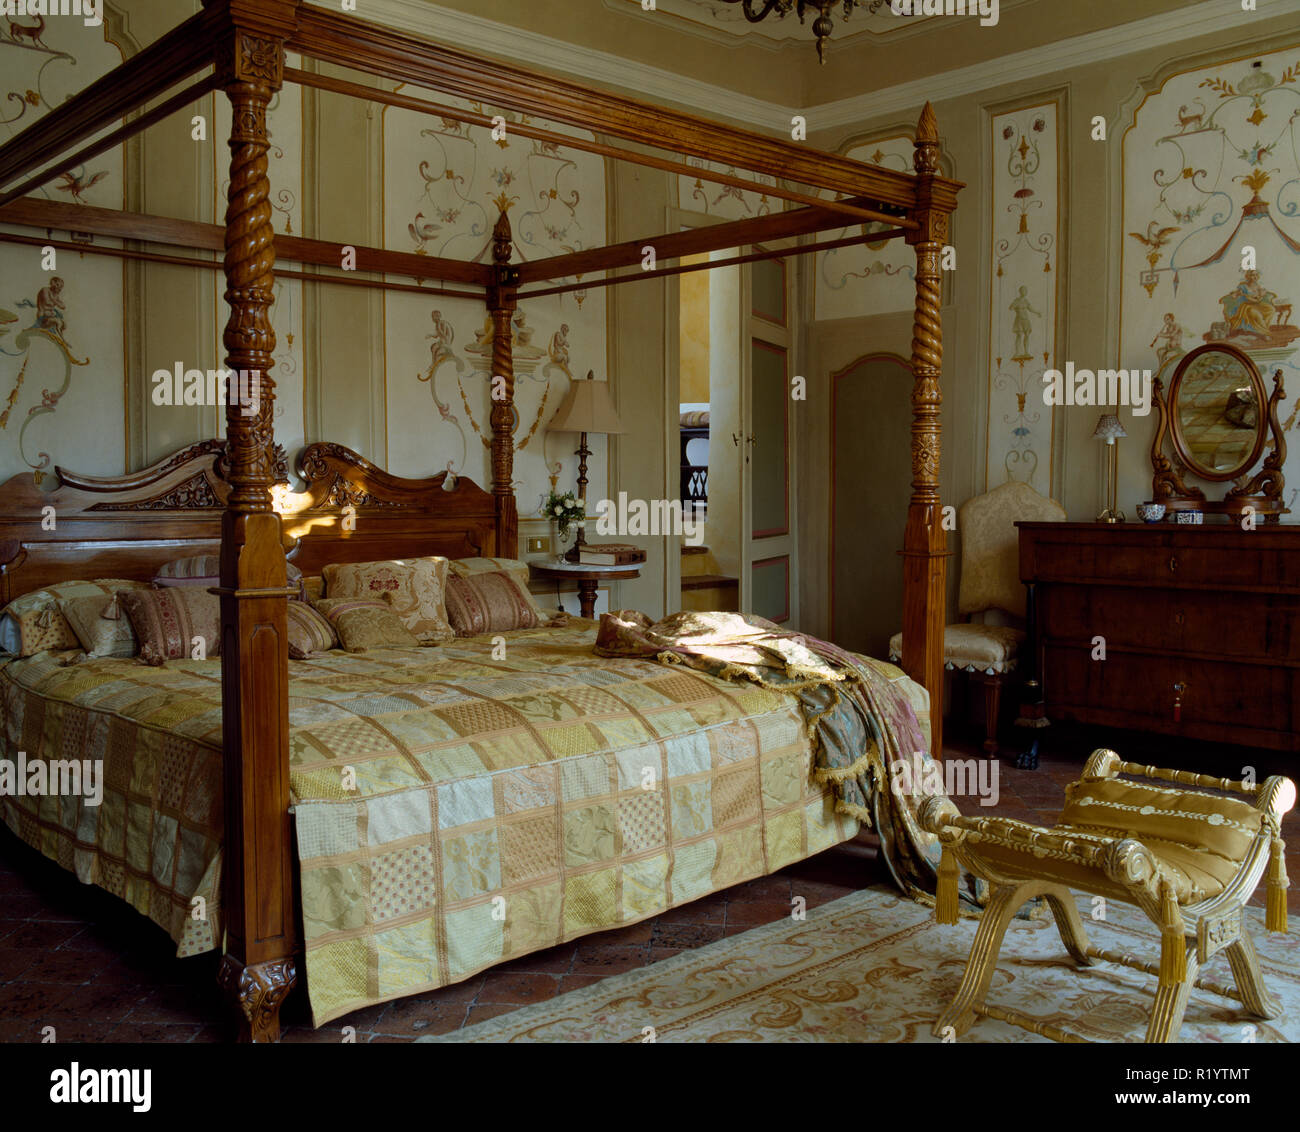 Antique bed in Tuscan bedroom with vintage murals on walls Stock ...